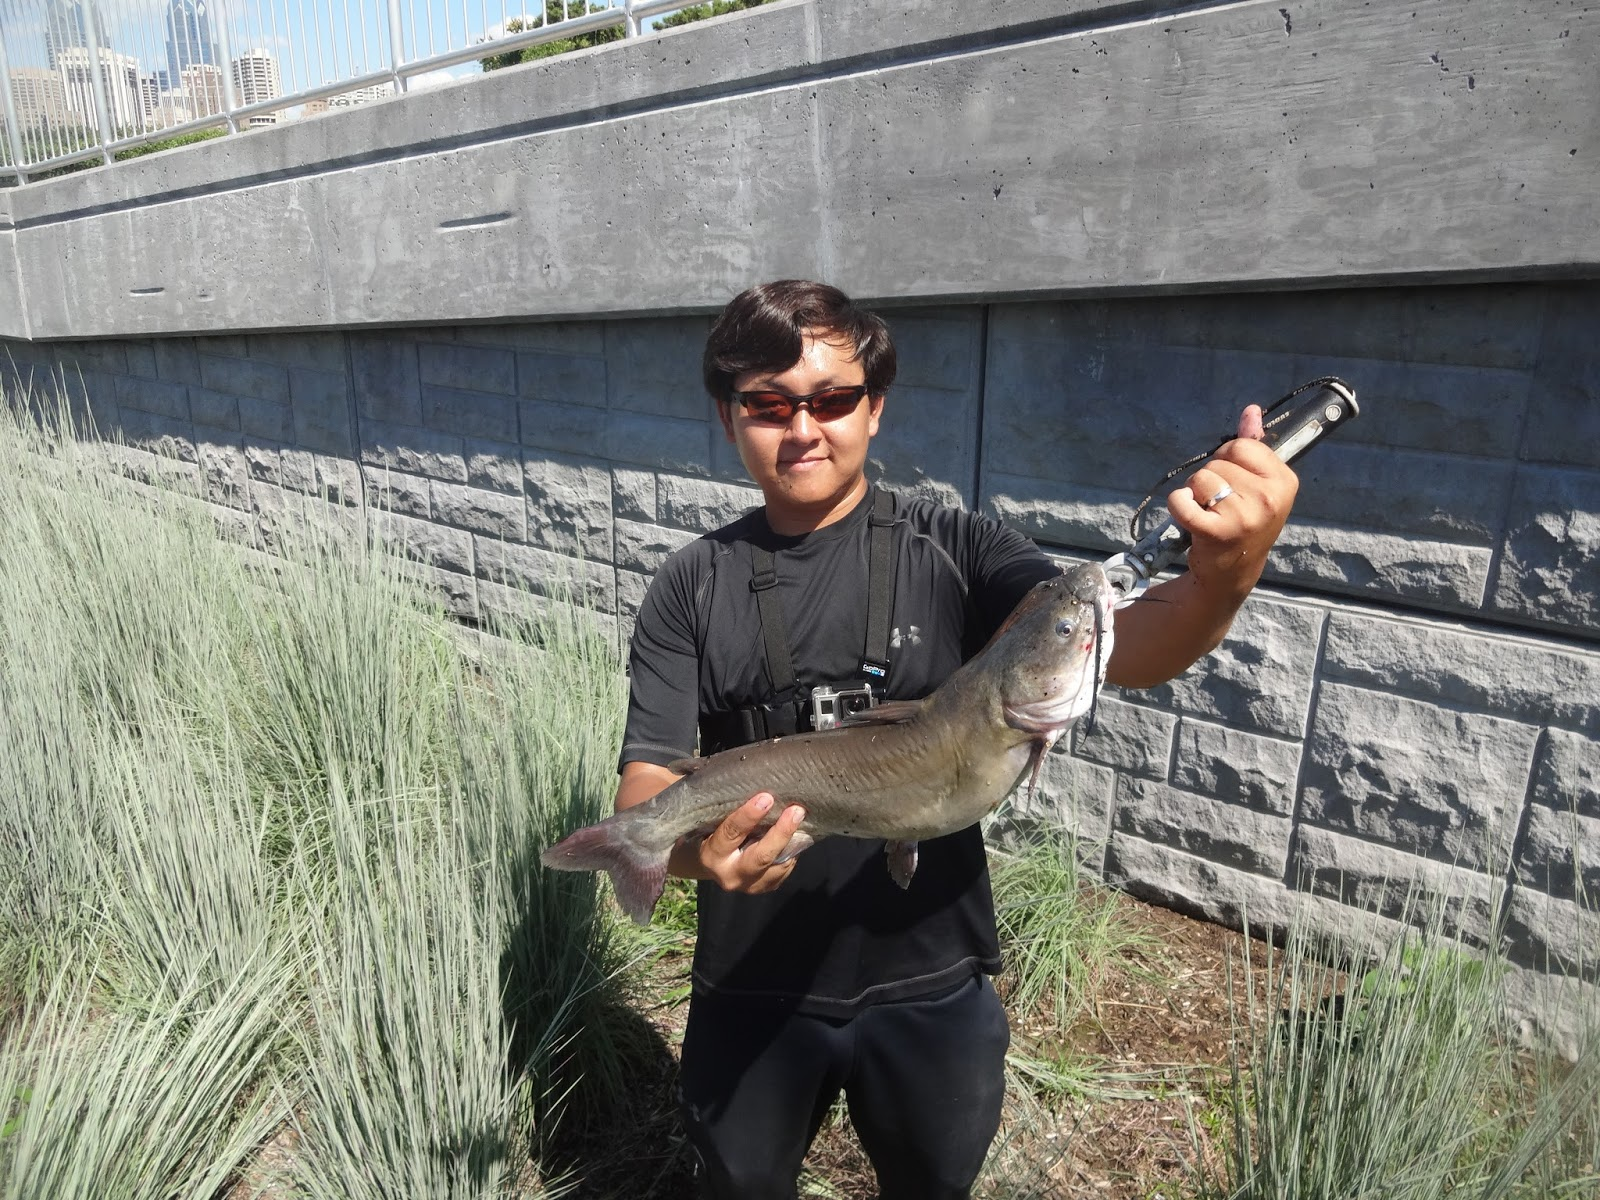 Extreme philly fishing july 2015 for Extreme philly fishing